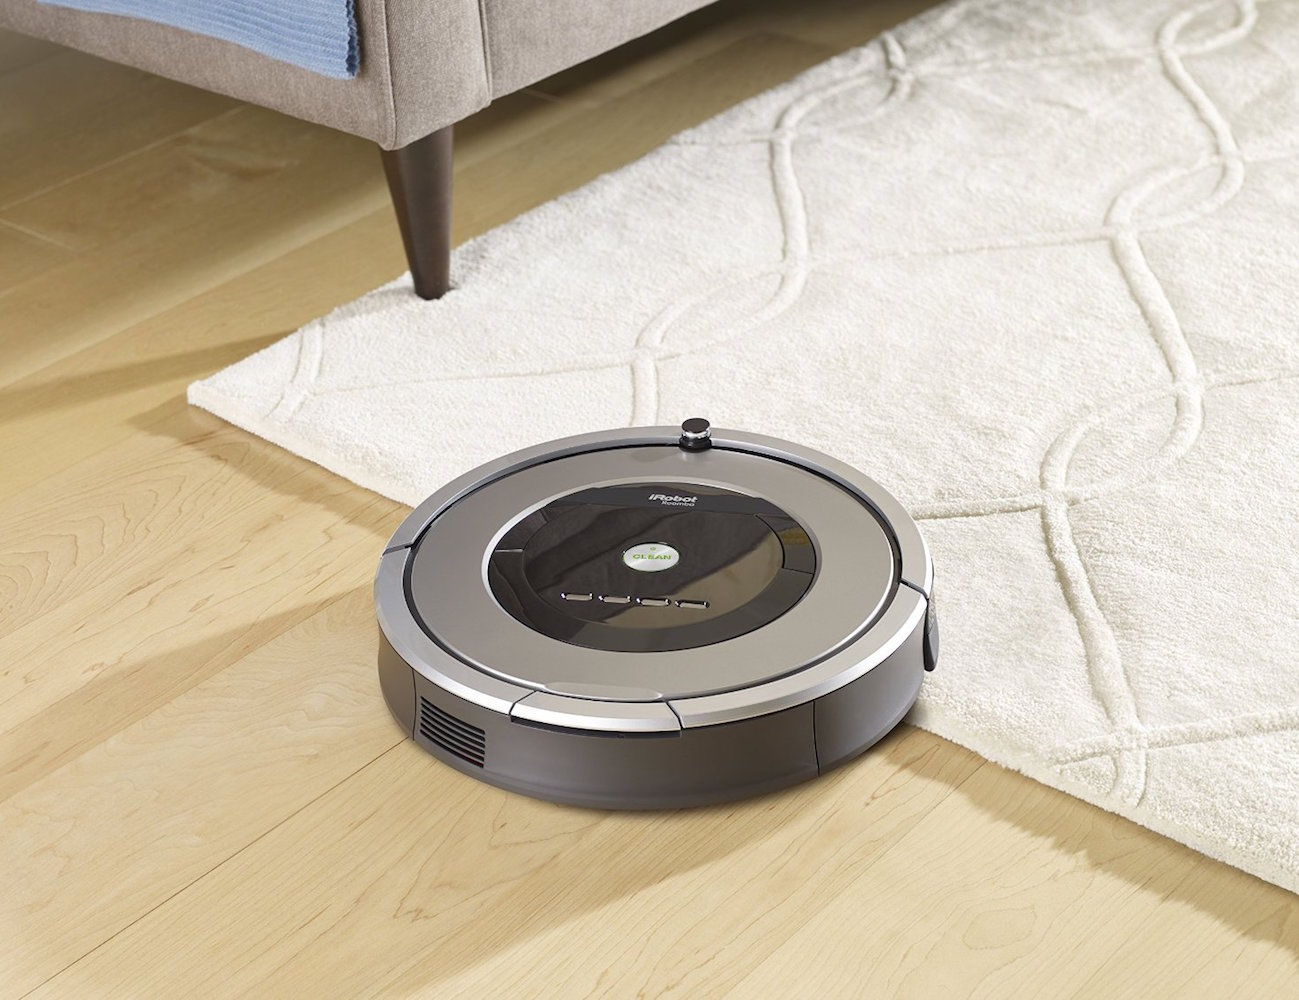 IRobot+Roomba+860+Vacuum+Cleaning+Robot